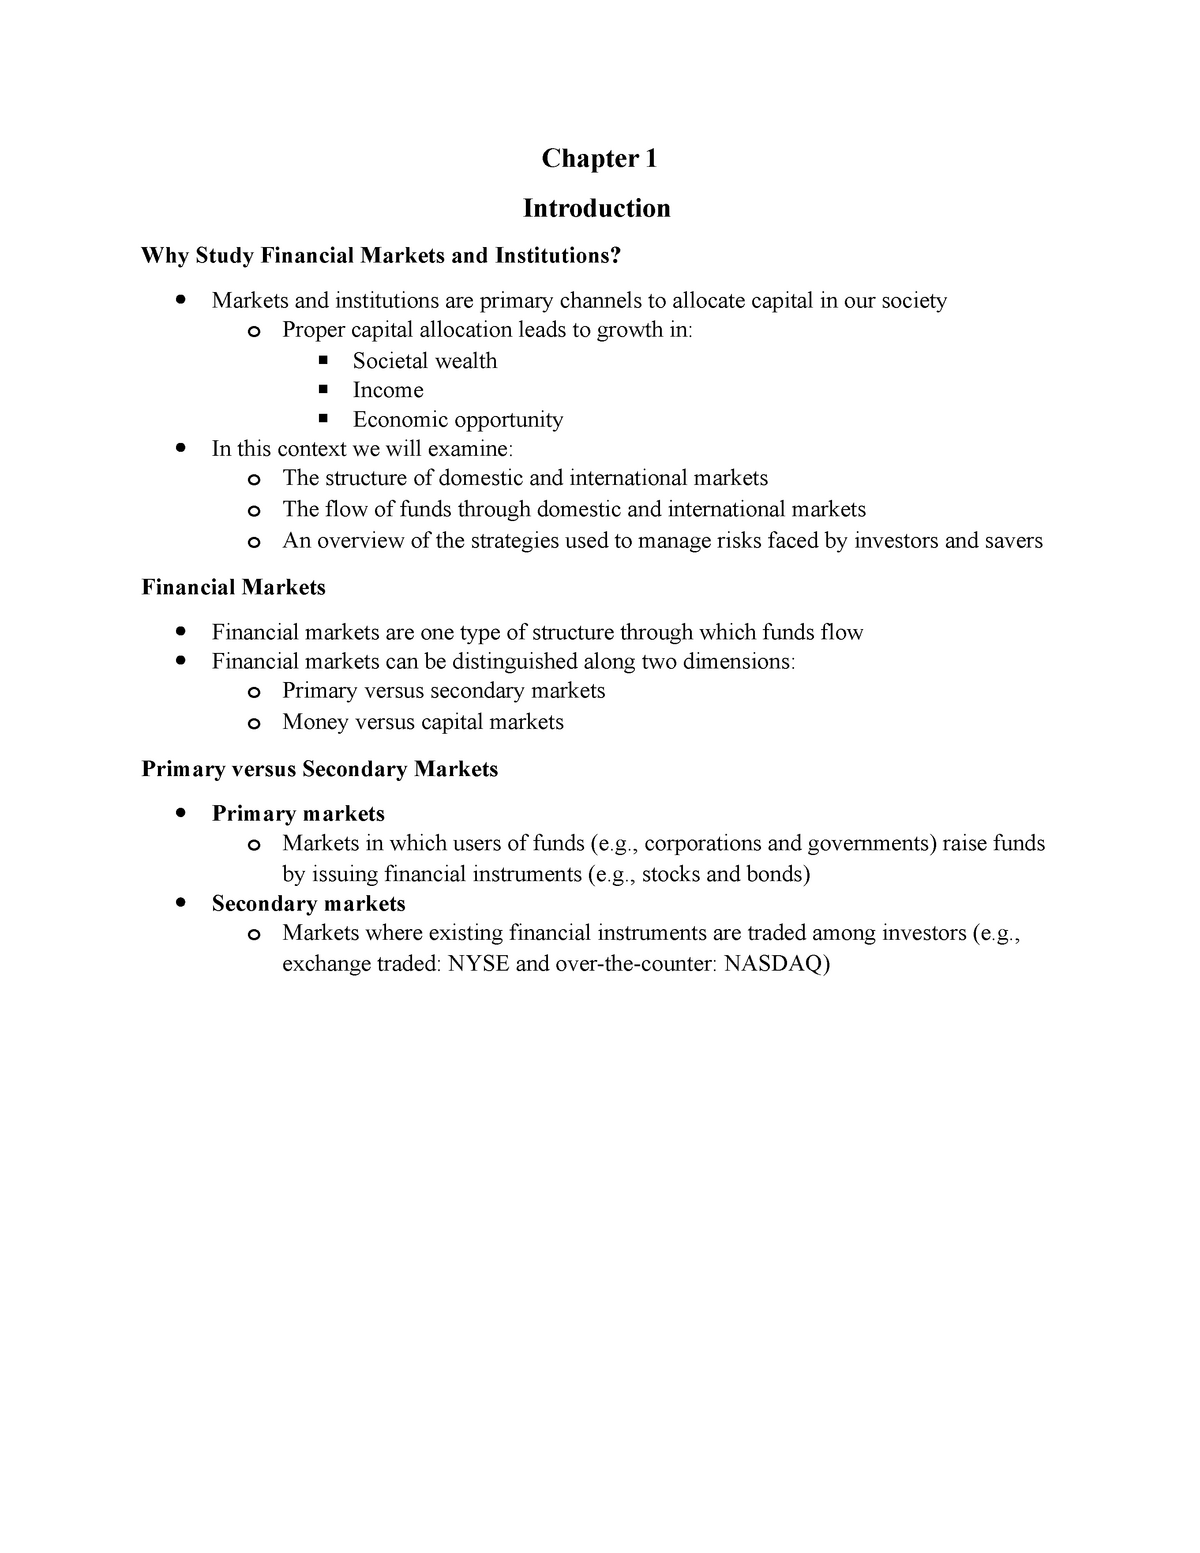 Ch 1 Introduction - Lecture notes 3 - FIN 325: Fin Institutions And